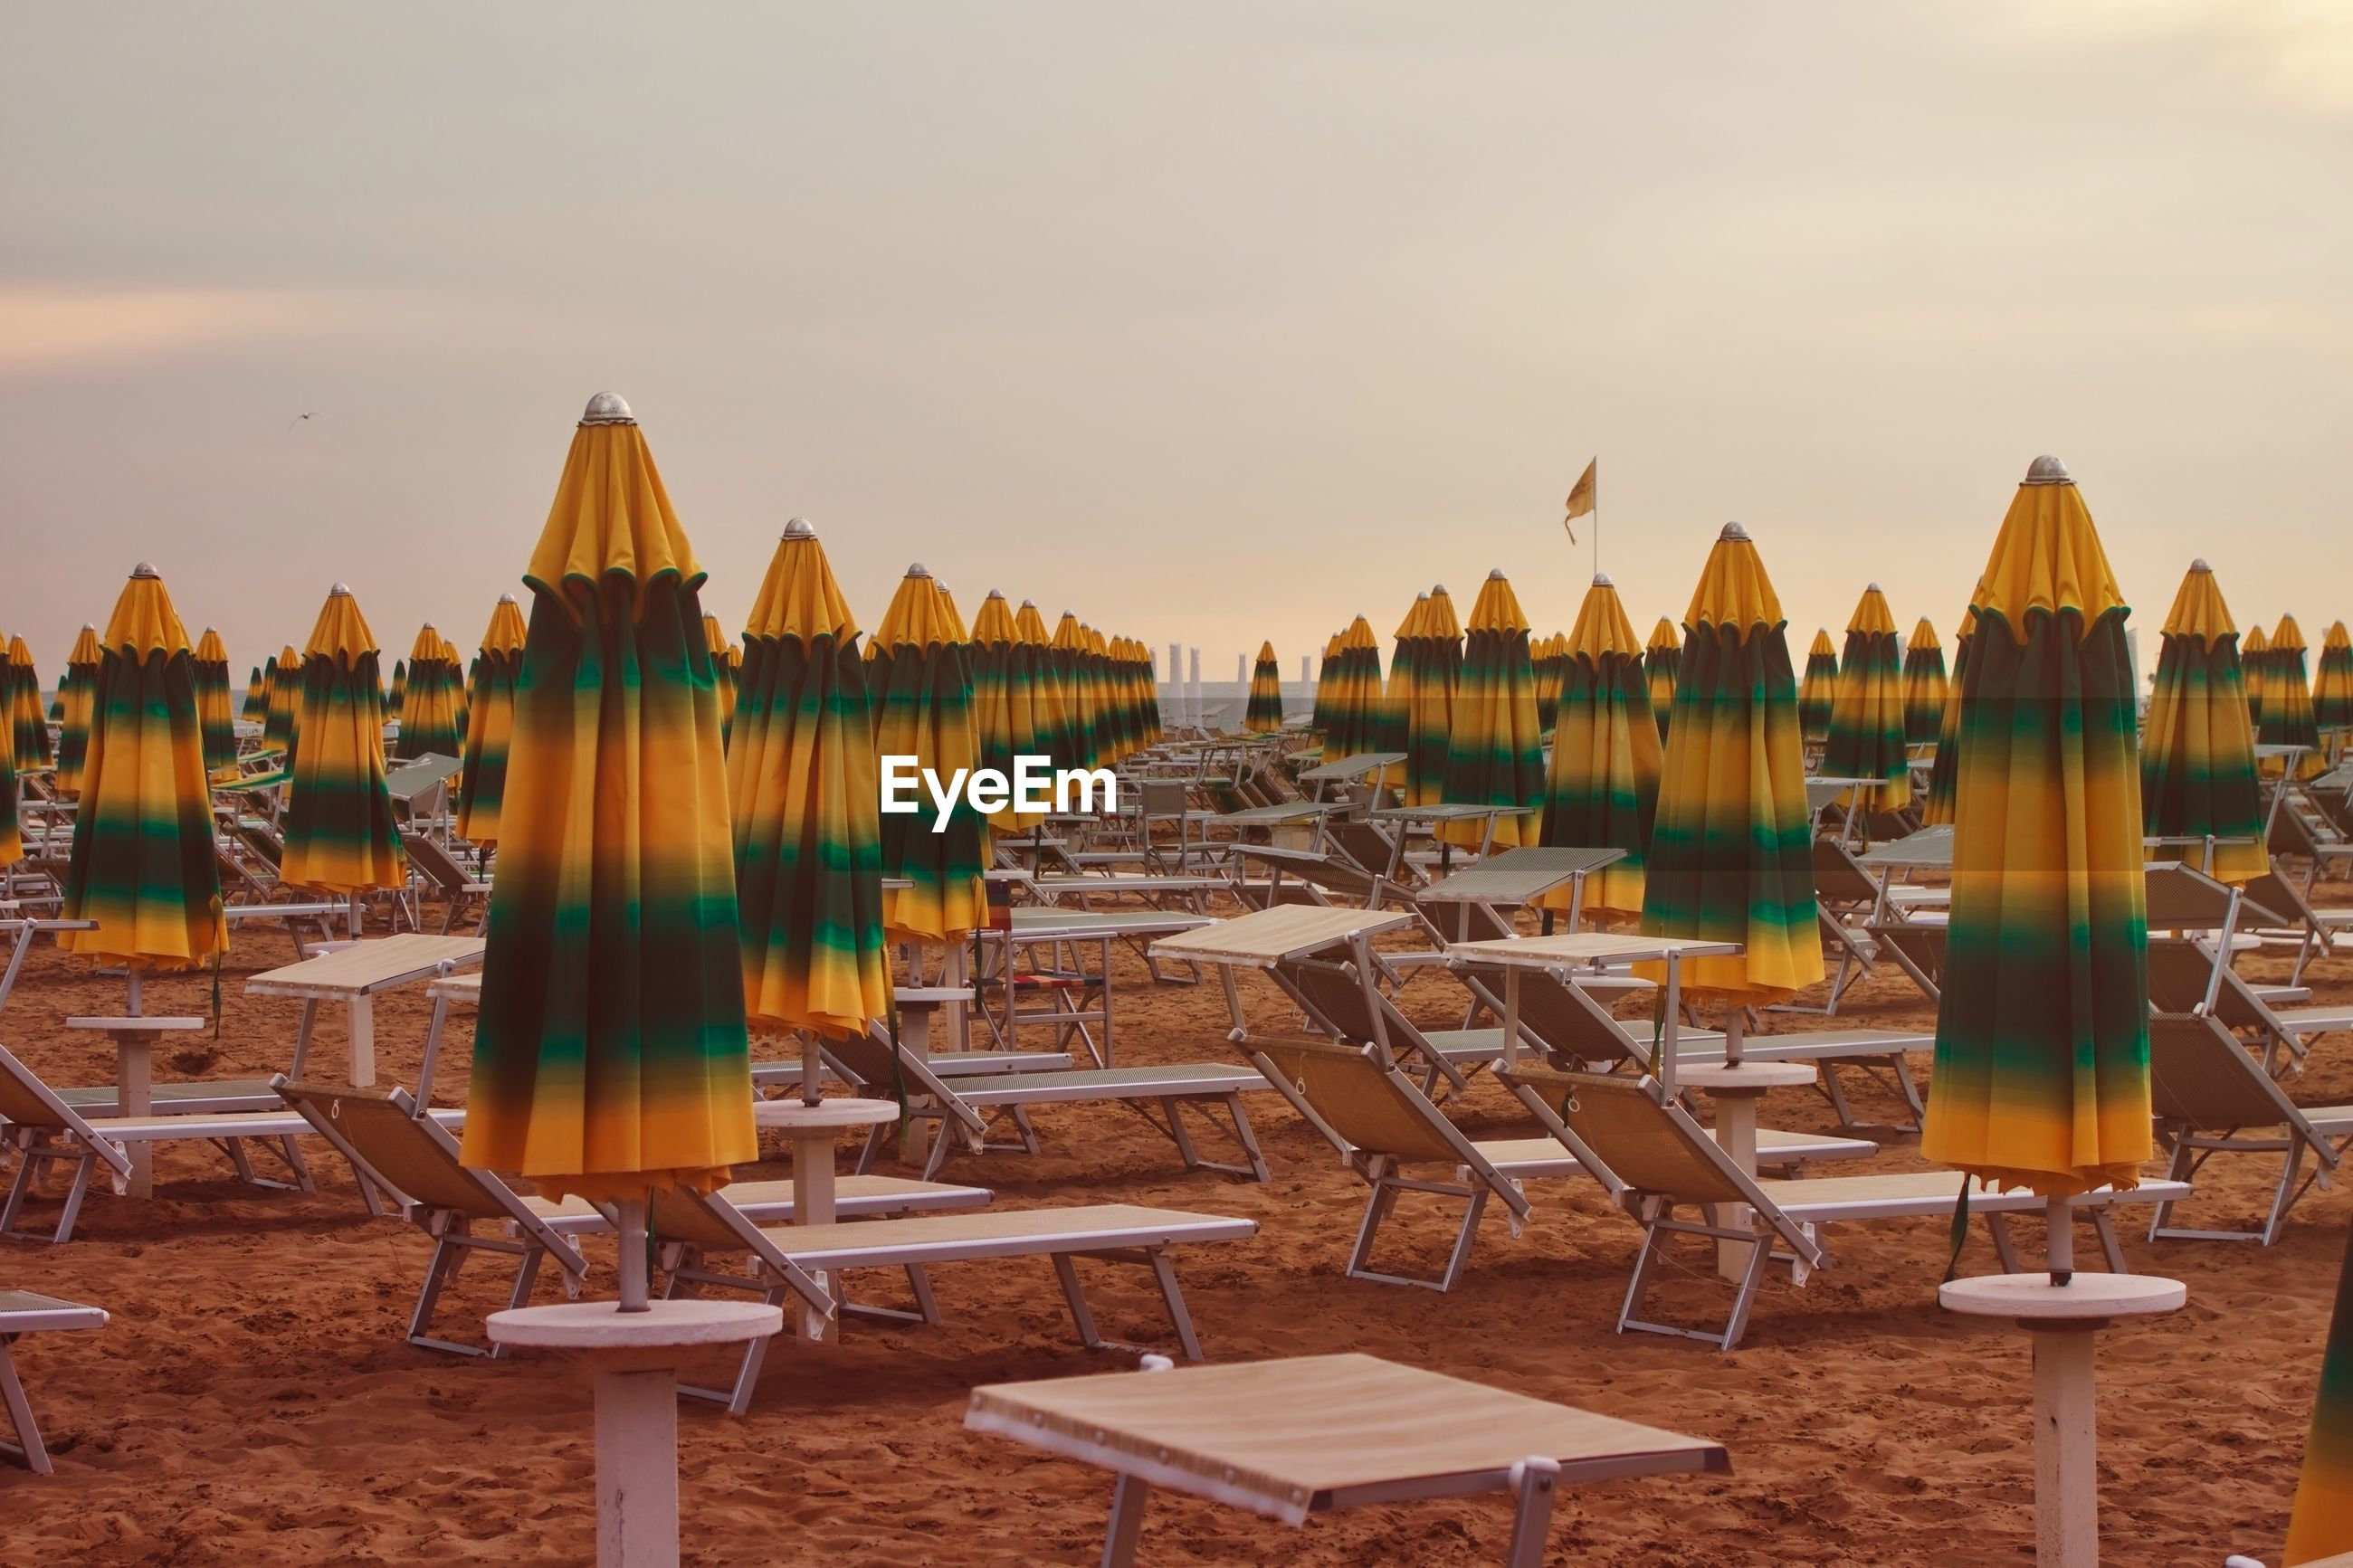 Empty chairs and umbrellas on  beach against sky